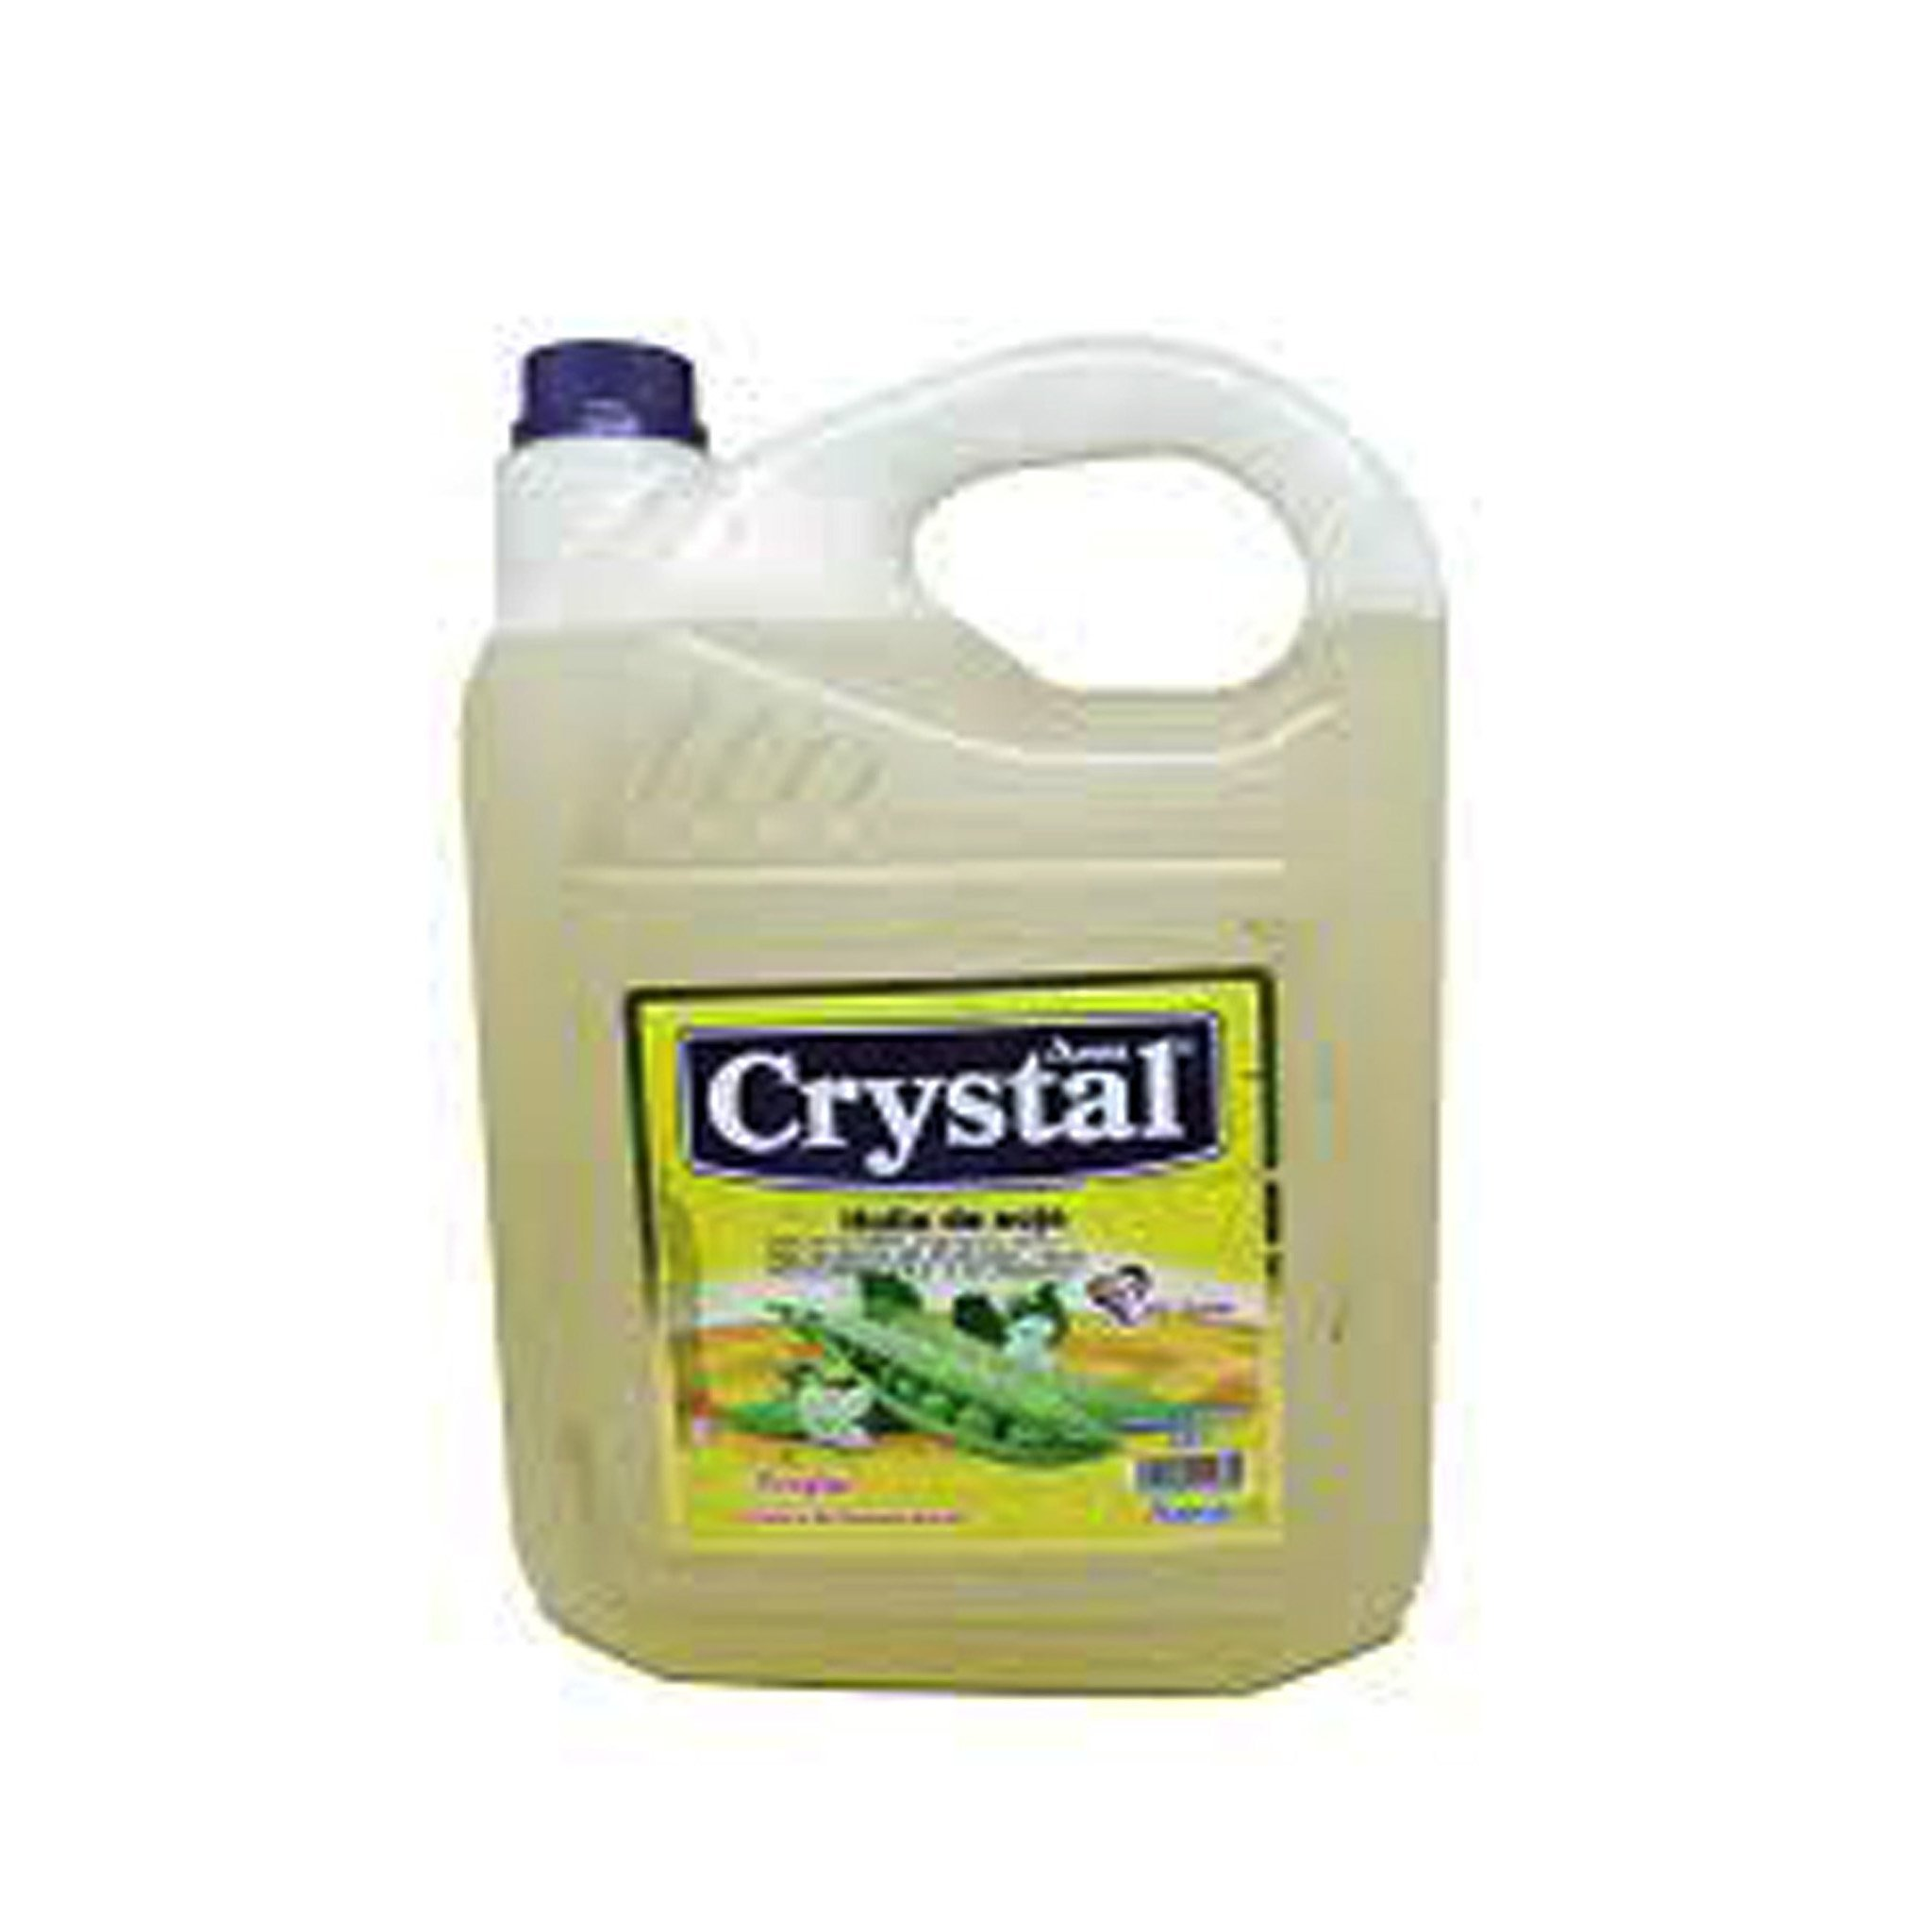 Crysatal Peas Oil 5 L, Price: 9500 Rwf, Delivery Fees: 1000 Rwf